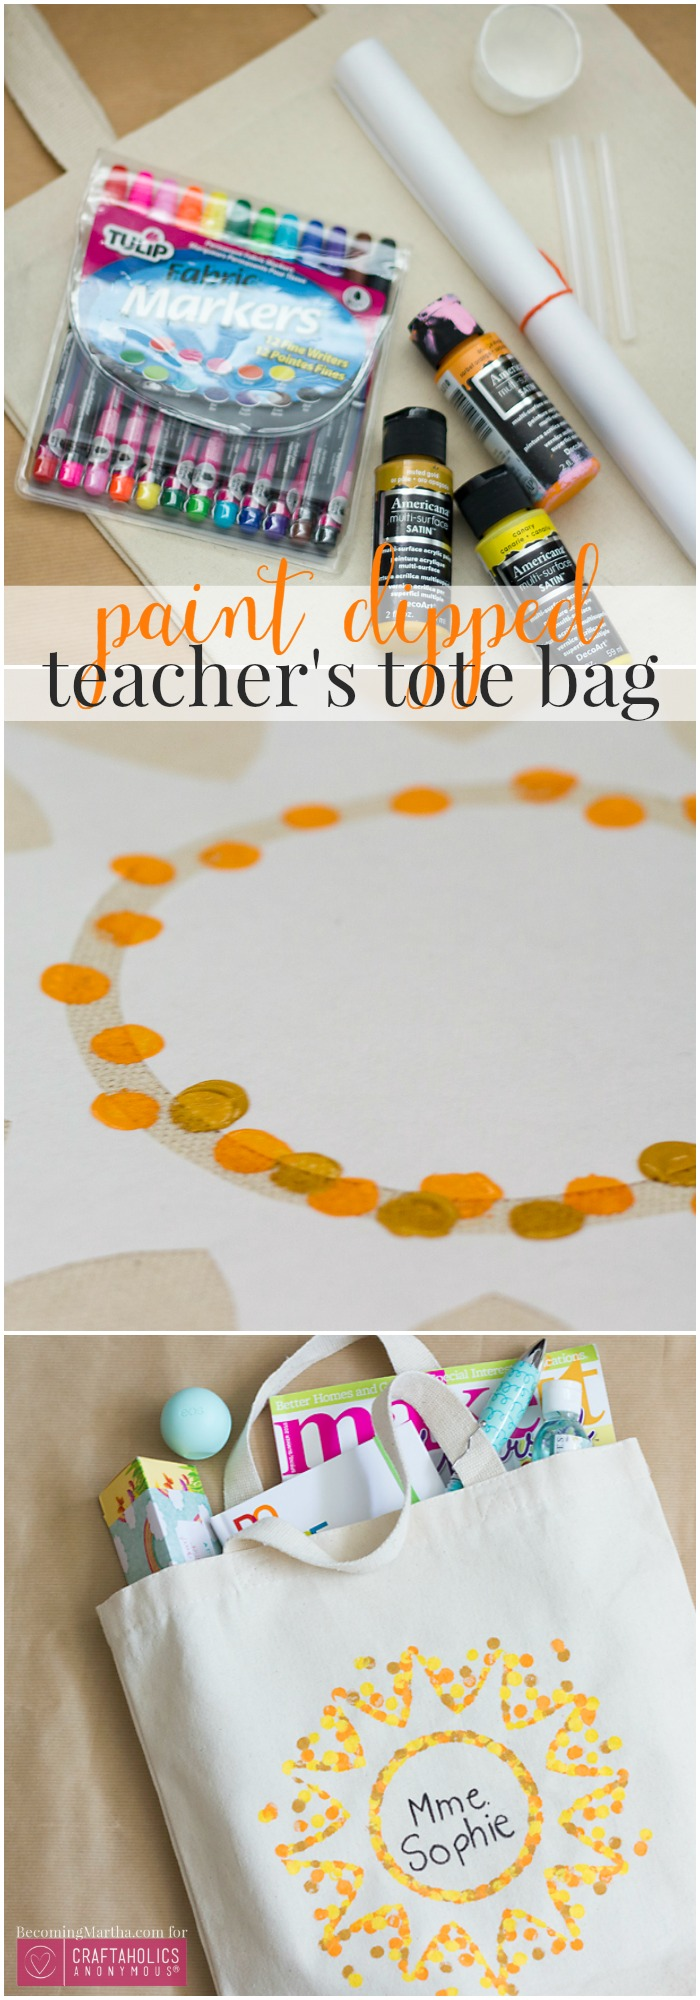 Easy Last Minute Teacher Appreciation Gift Idea! Personalize this canvas tote for your favorite teacher this year!